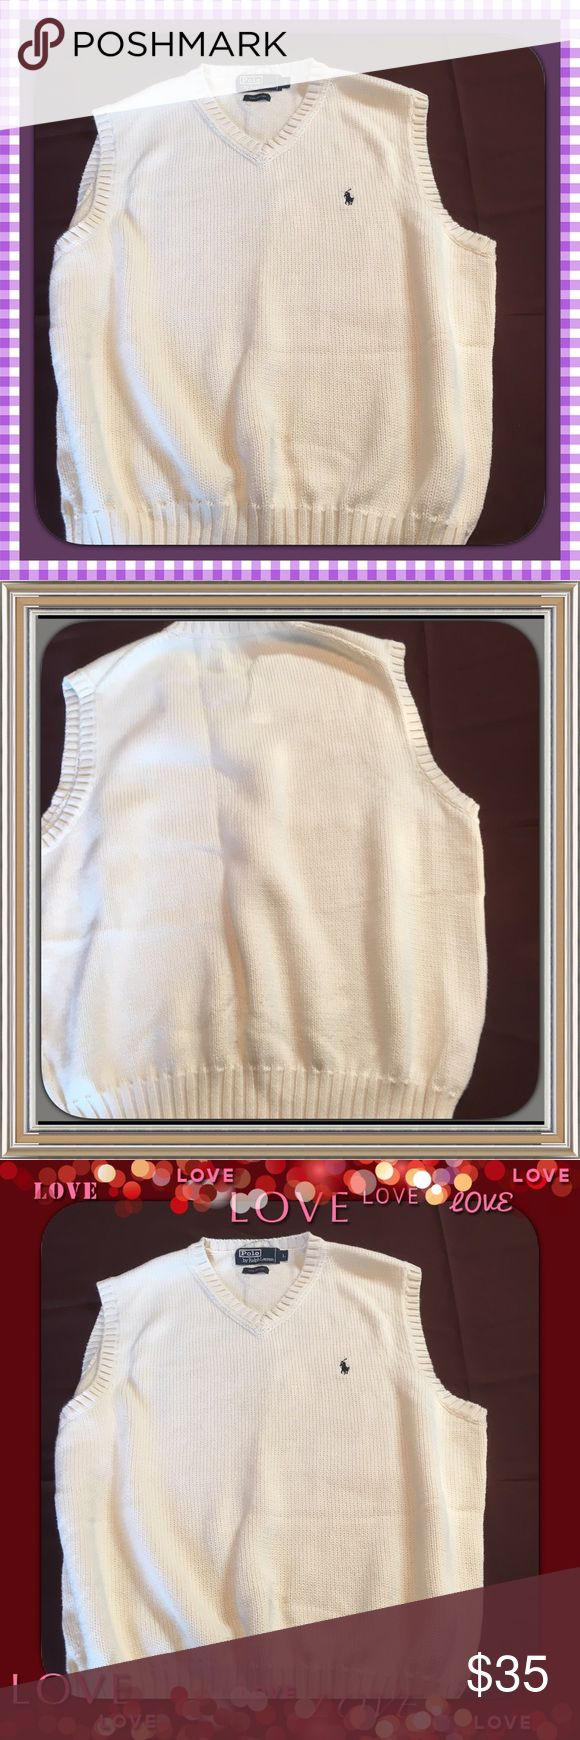 Men's Ralph Lauren Vest PRICED TO SELL   White vest that looks super on the handsome man. Great gift!  Polo vest by Ralph Lauren is gorgeous Size Large Polo by Ralph Lauren Sweaters